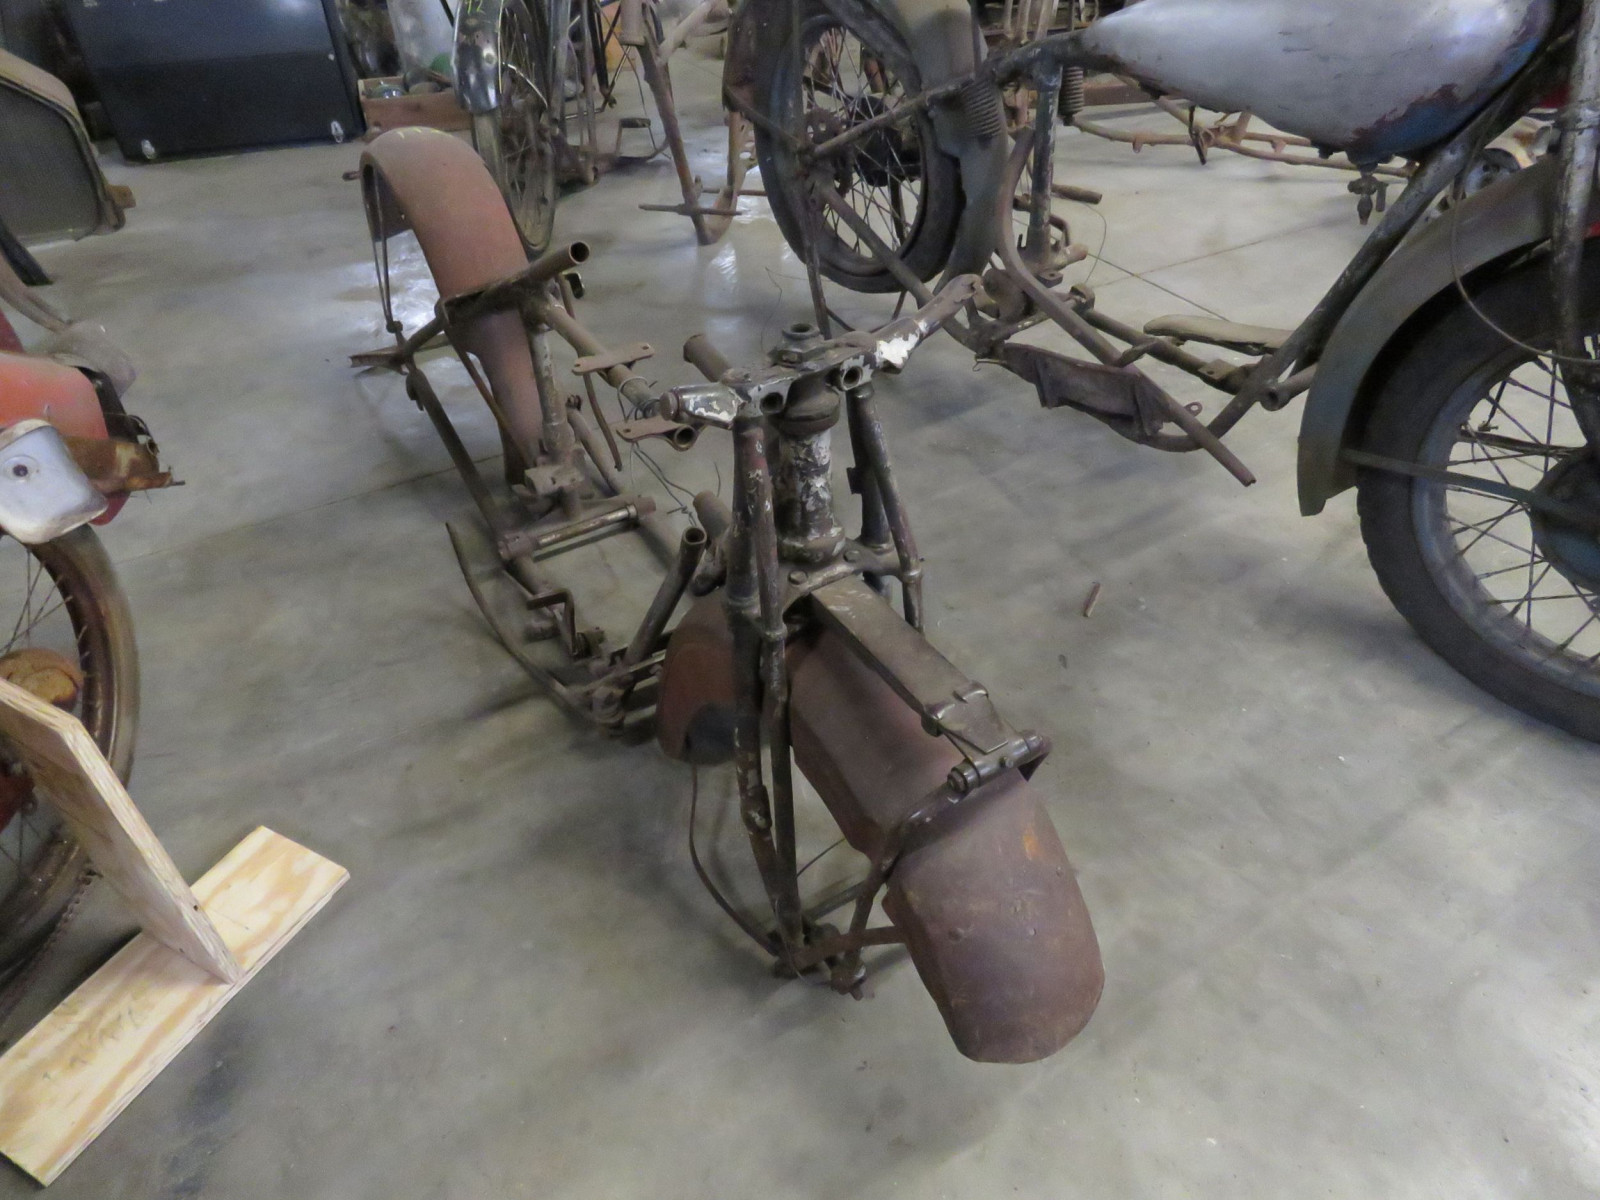 Vintage Indian Motorcycle Frame Project - Image 4